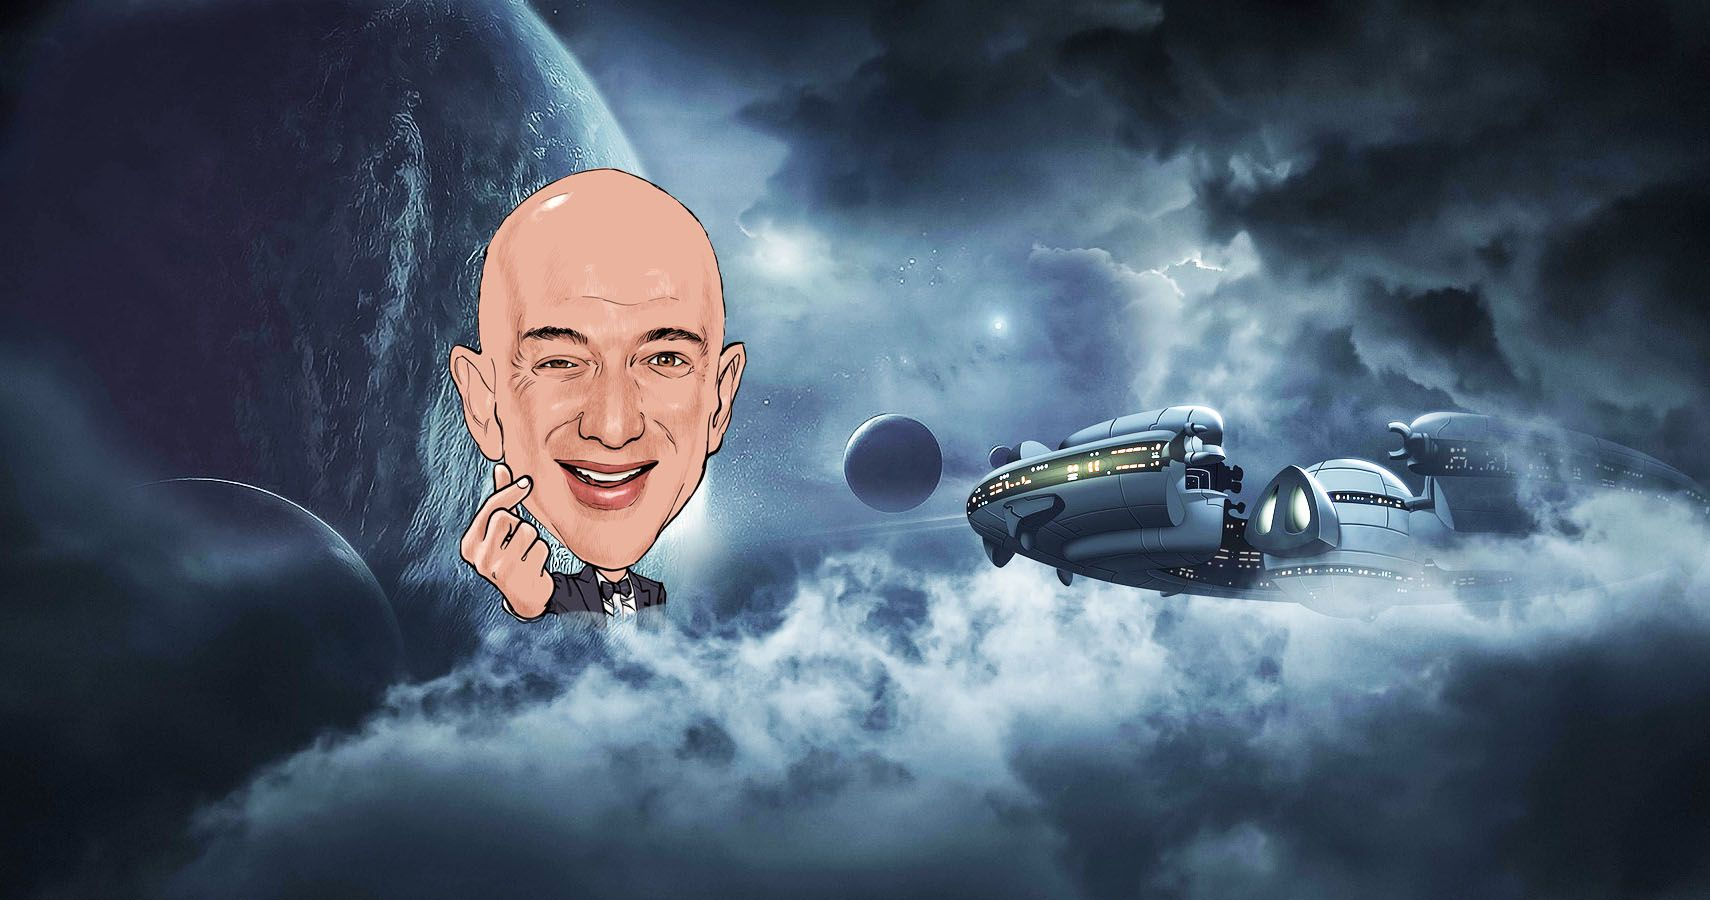 Jeff Bezos Planning To Pay Billions To Go To Space